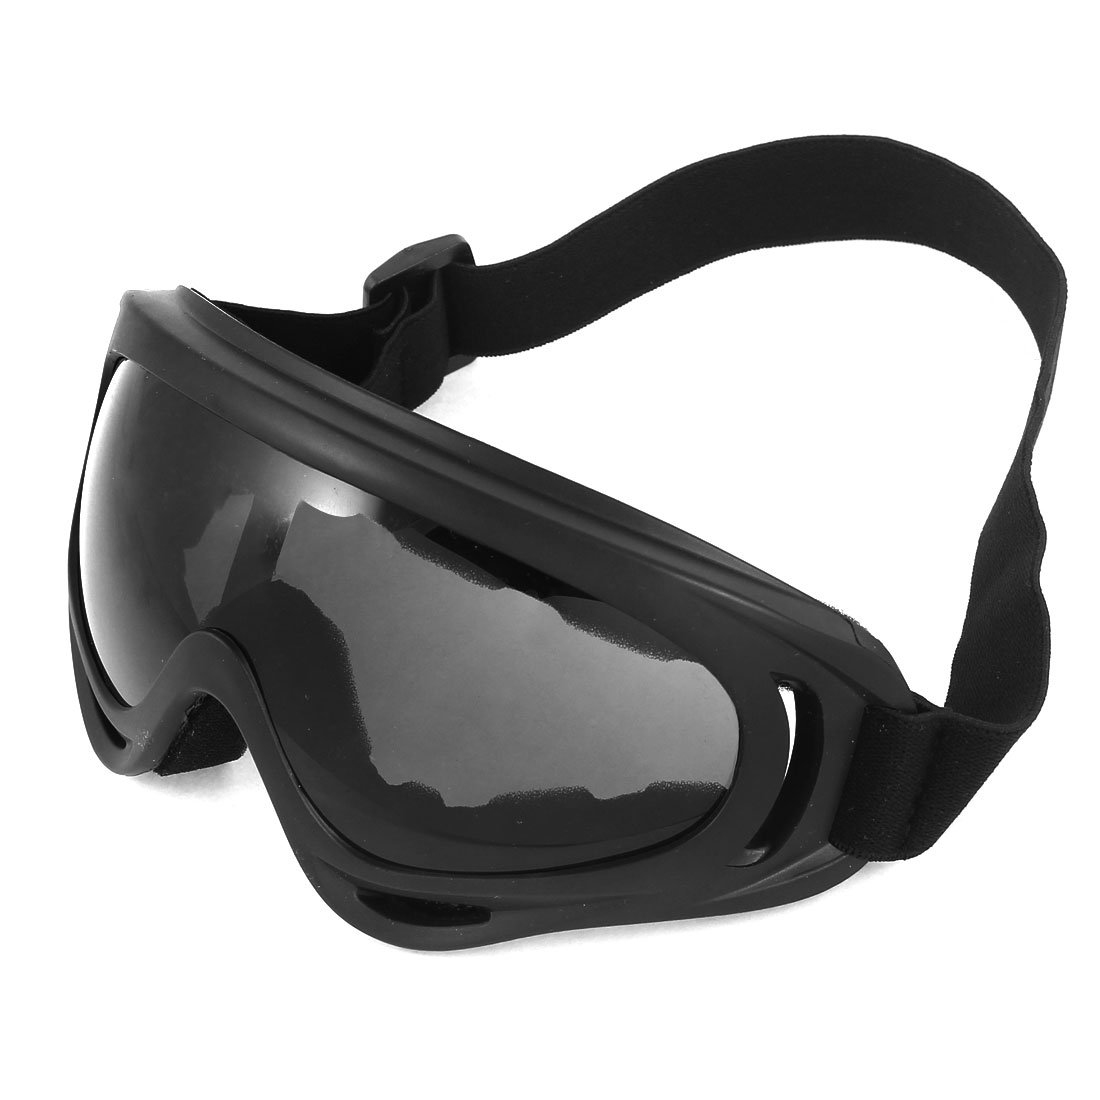 uxcell a14042900ux0721 Motorcycle Goggles